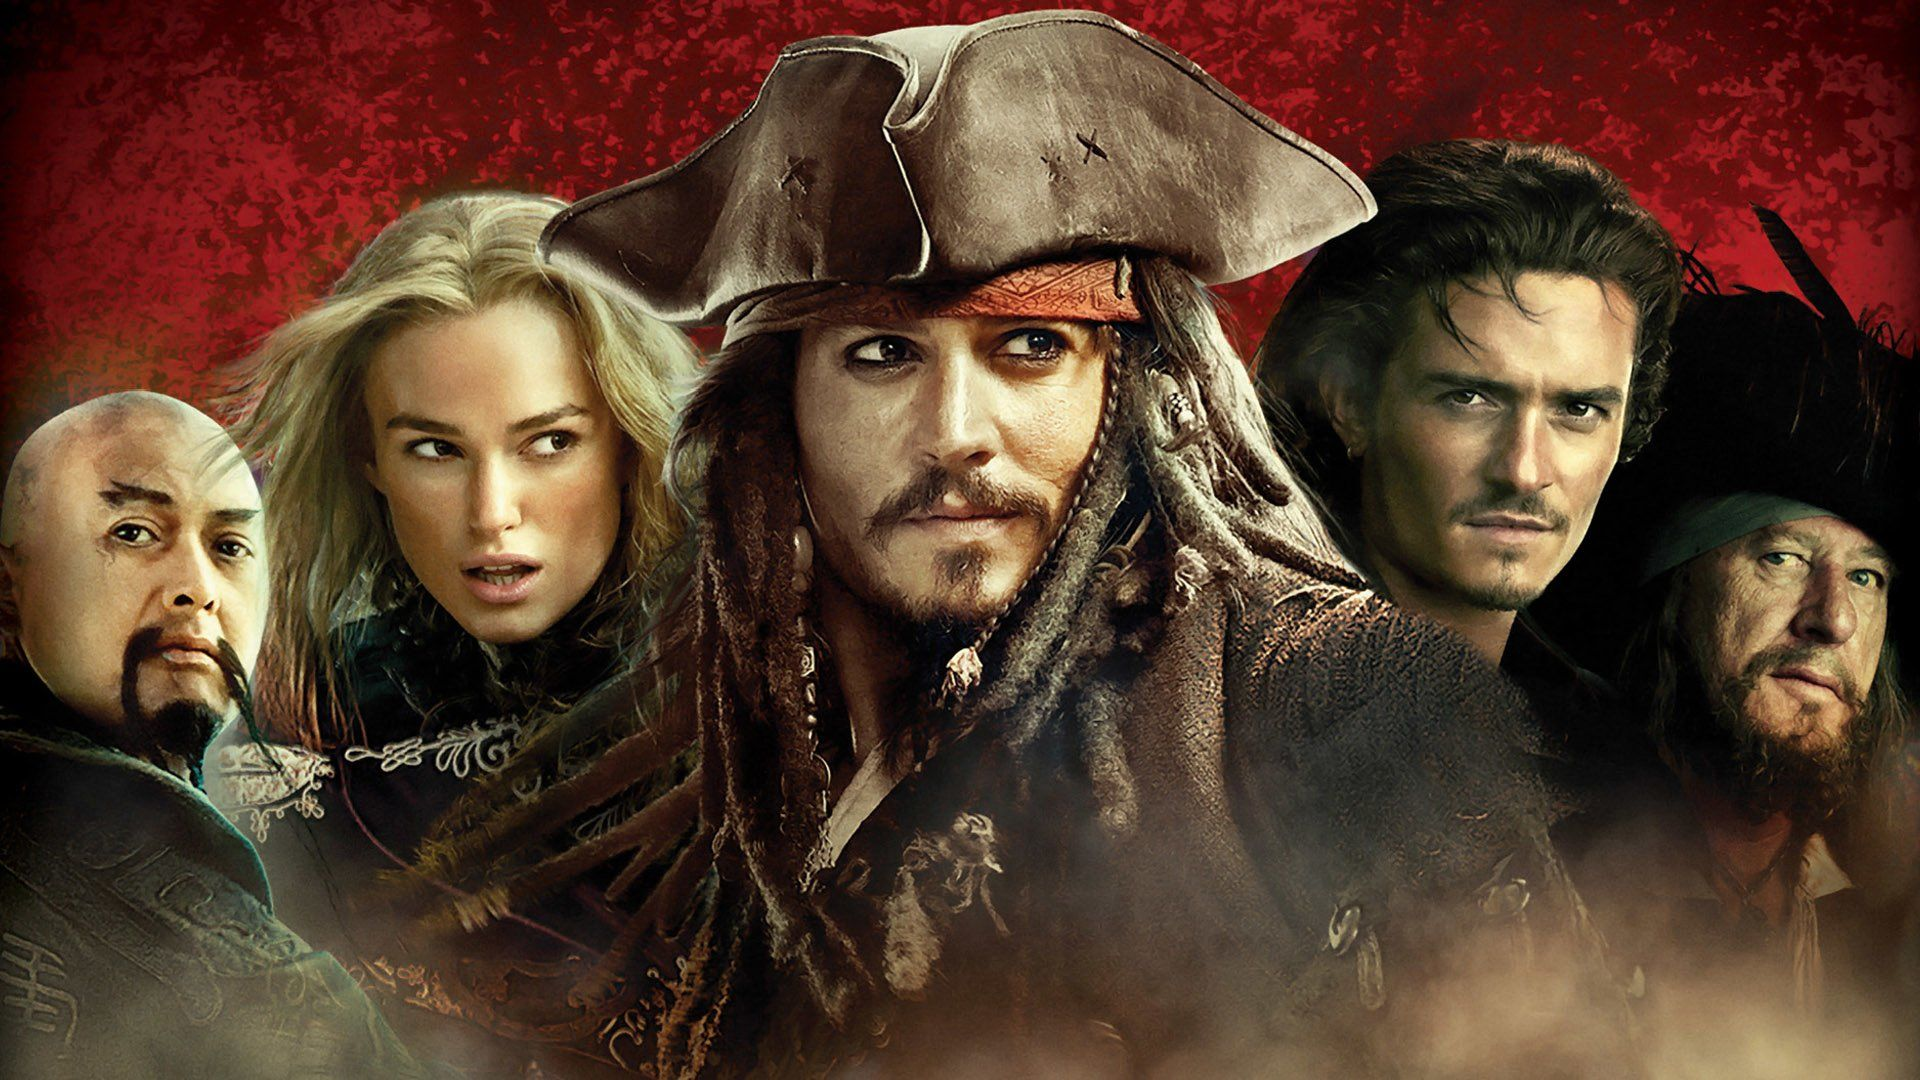 Will turner hd wallpapers backgrounds wallpaper hd wallpapers will turner hd wallpapers backgrounds wallpaper voltagebd Image collections